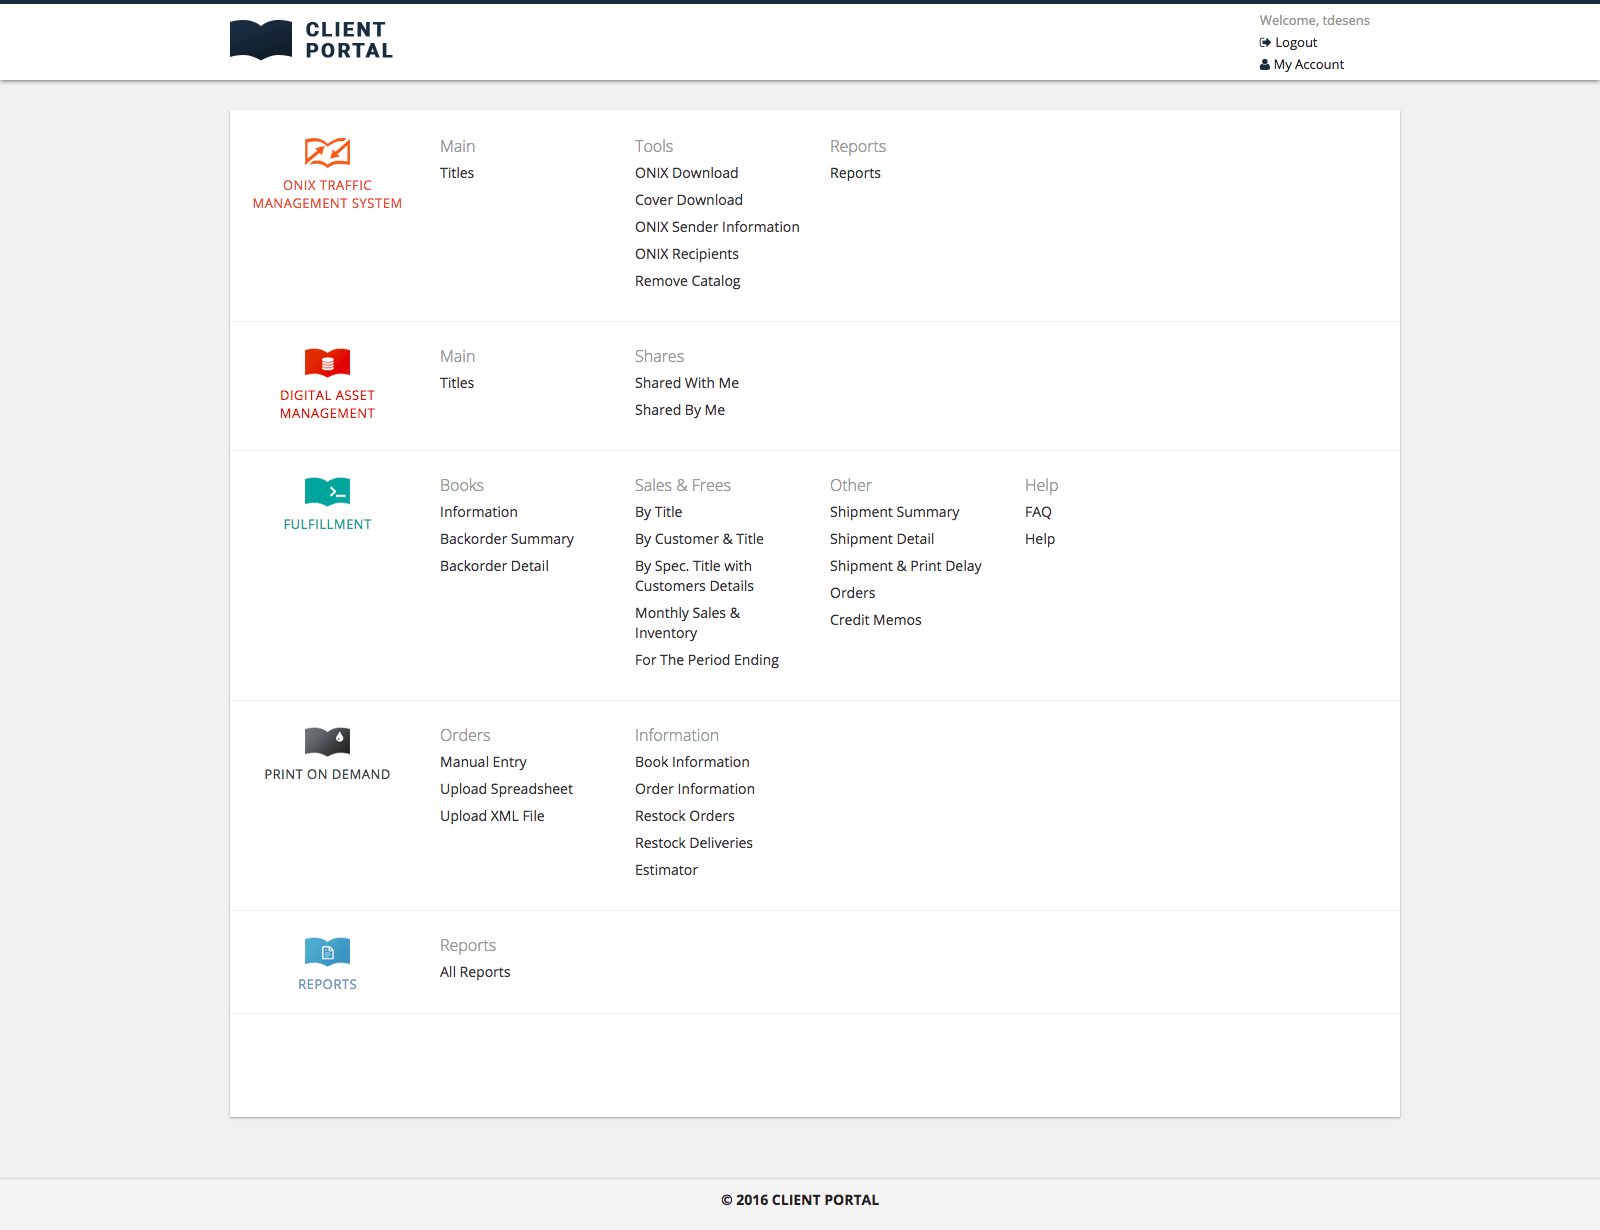 Client Portal menu screenshot